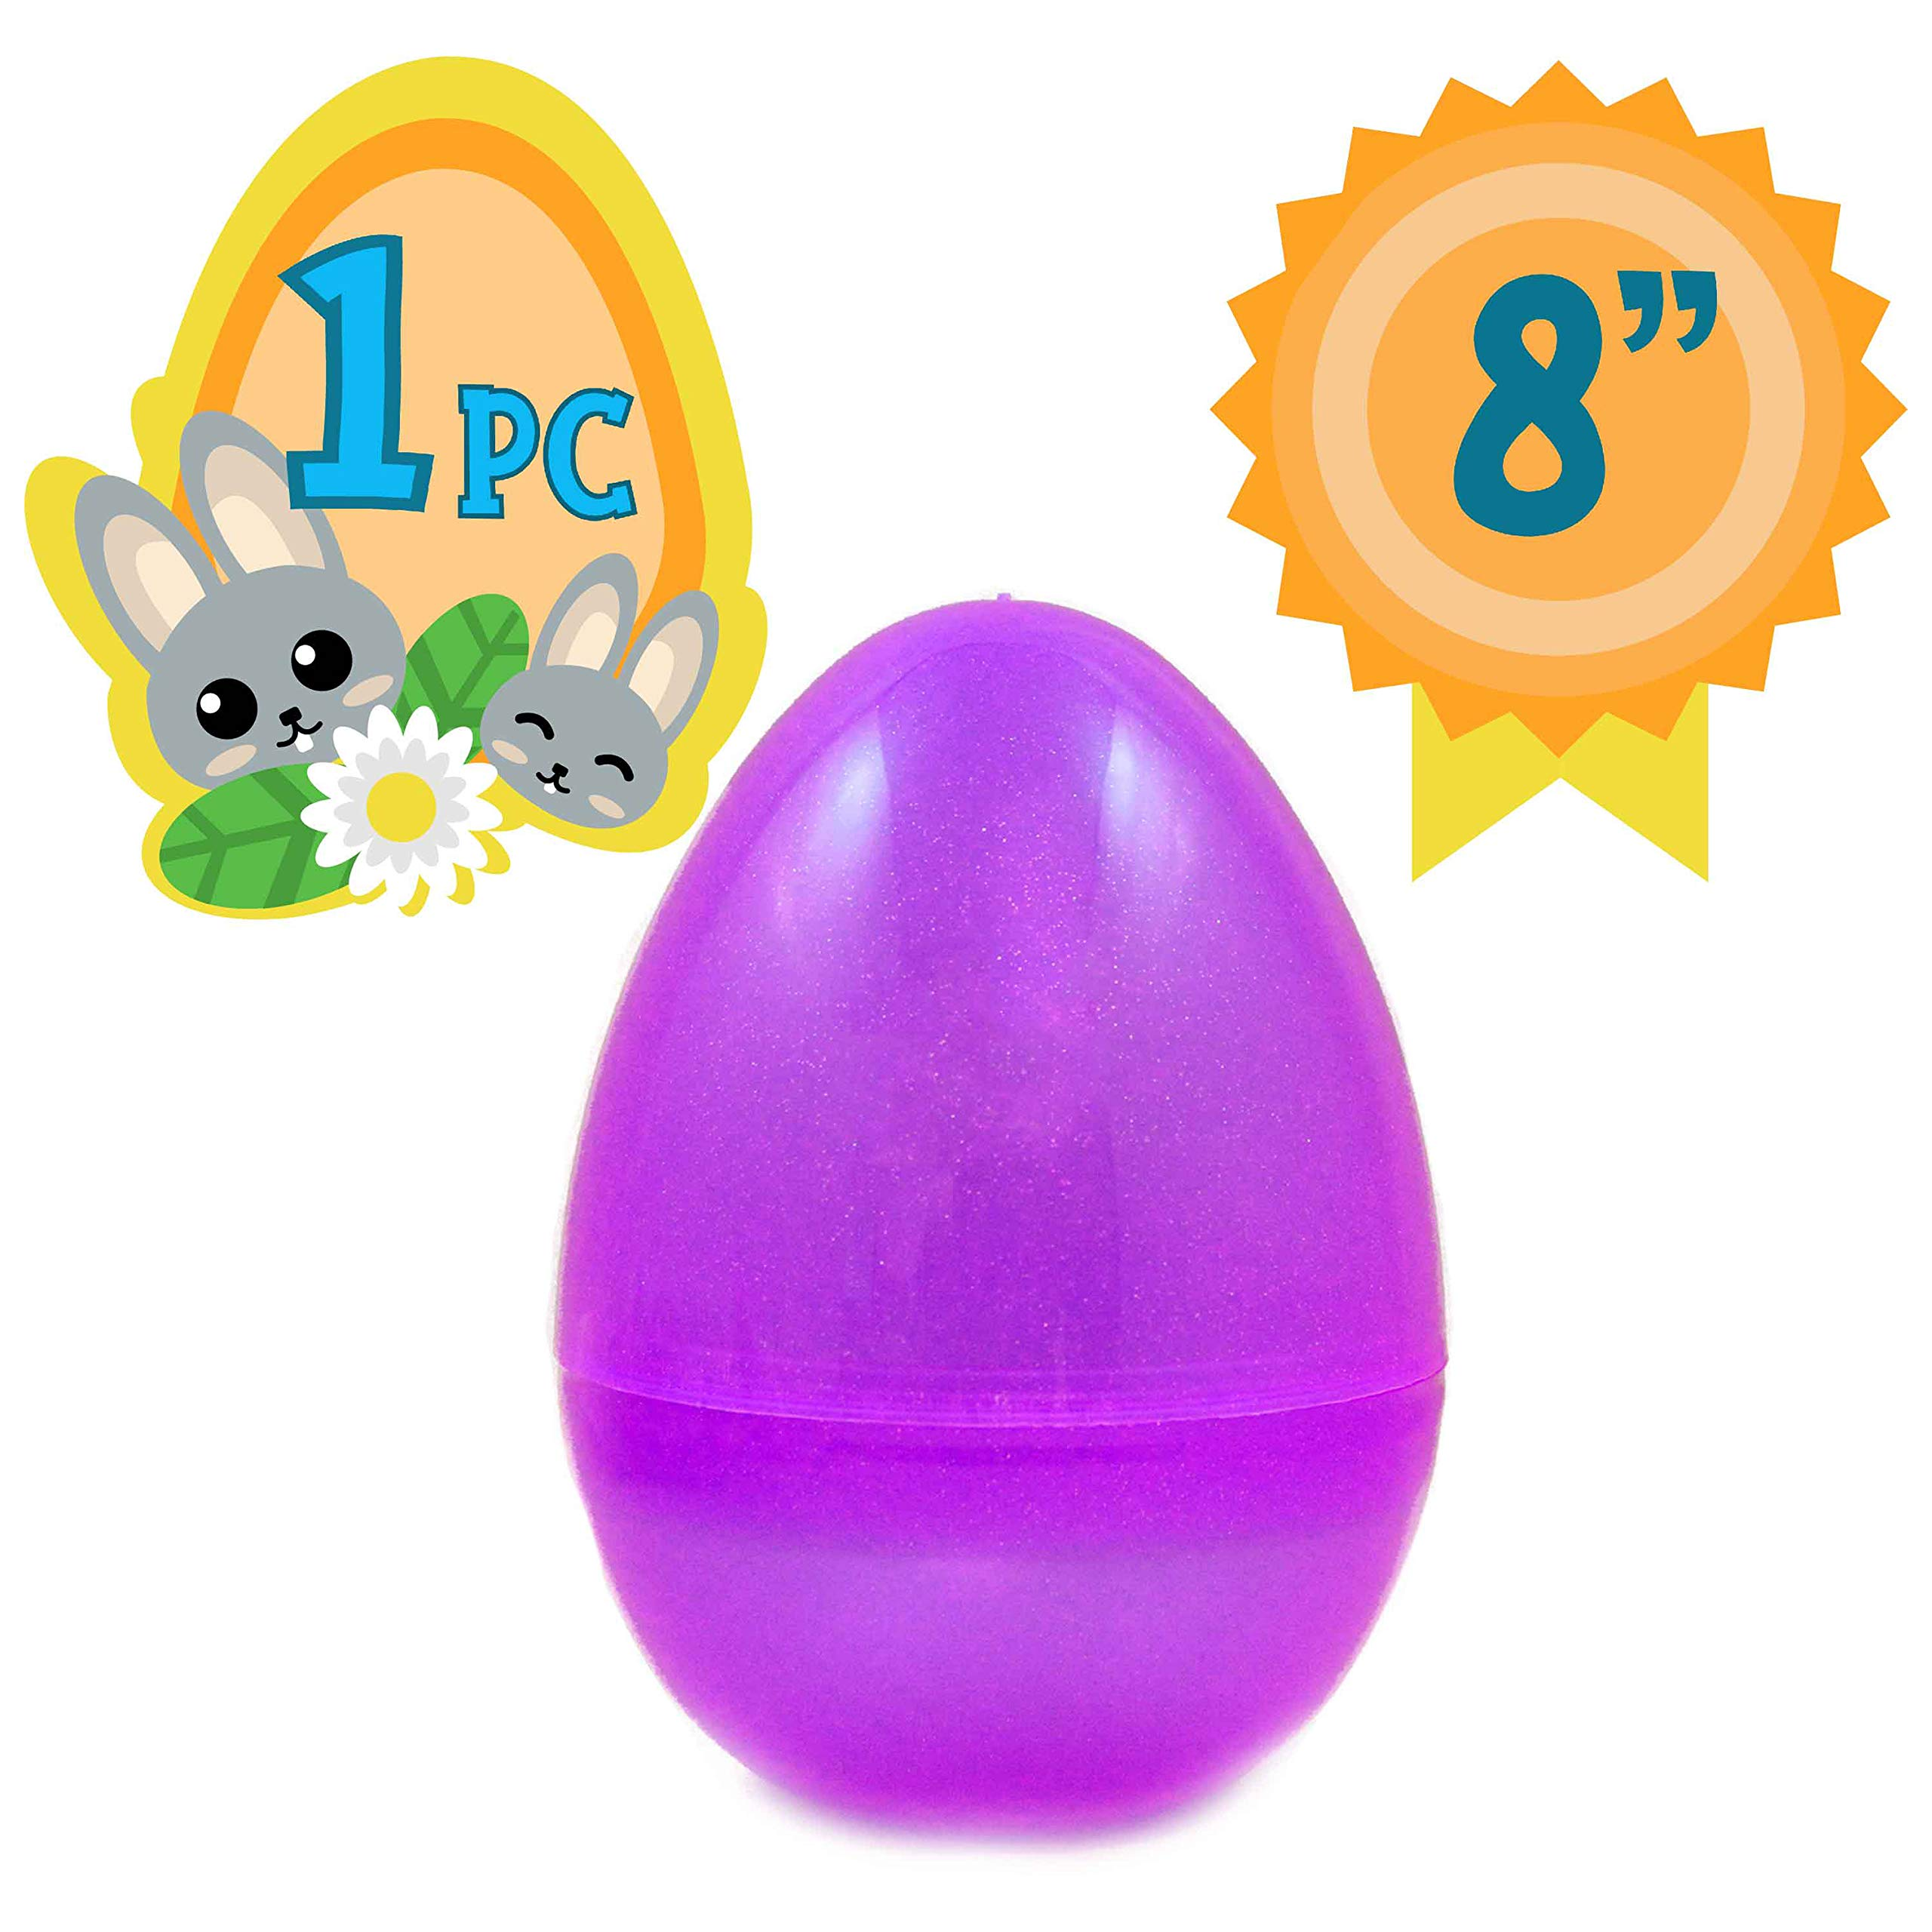 Jumbo 8-Inch Transparent Purple Glitter Easter Egg - The Perfect Size for Holding Toys, Candy, and Stuffed Animals - Easy to Open, Tough to Break - Great As Party Favors and Easter Basket Stuffers